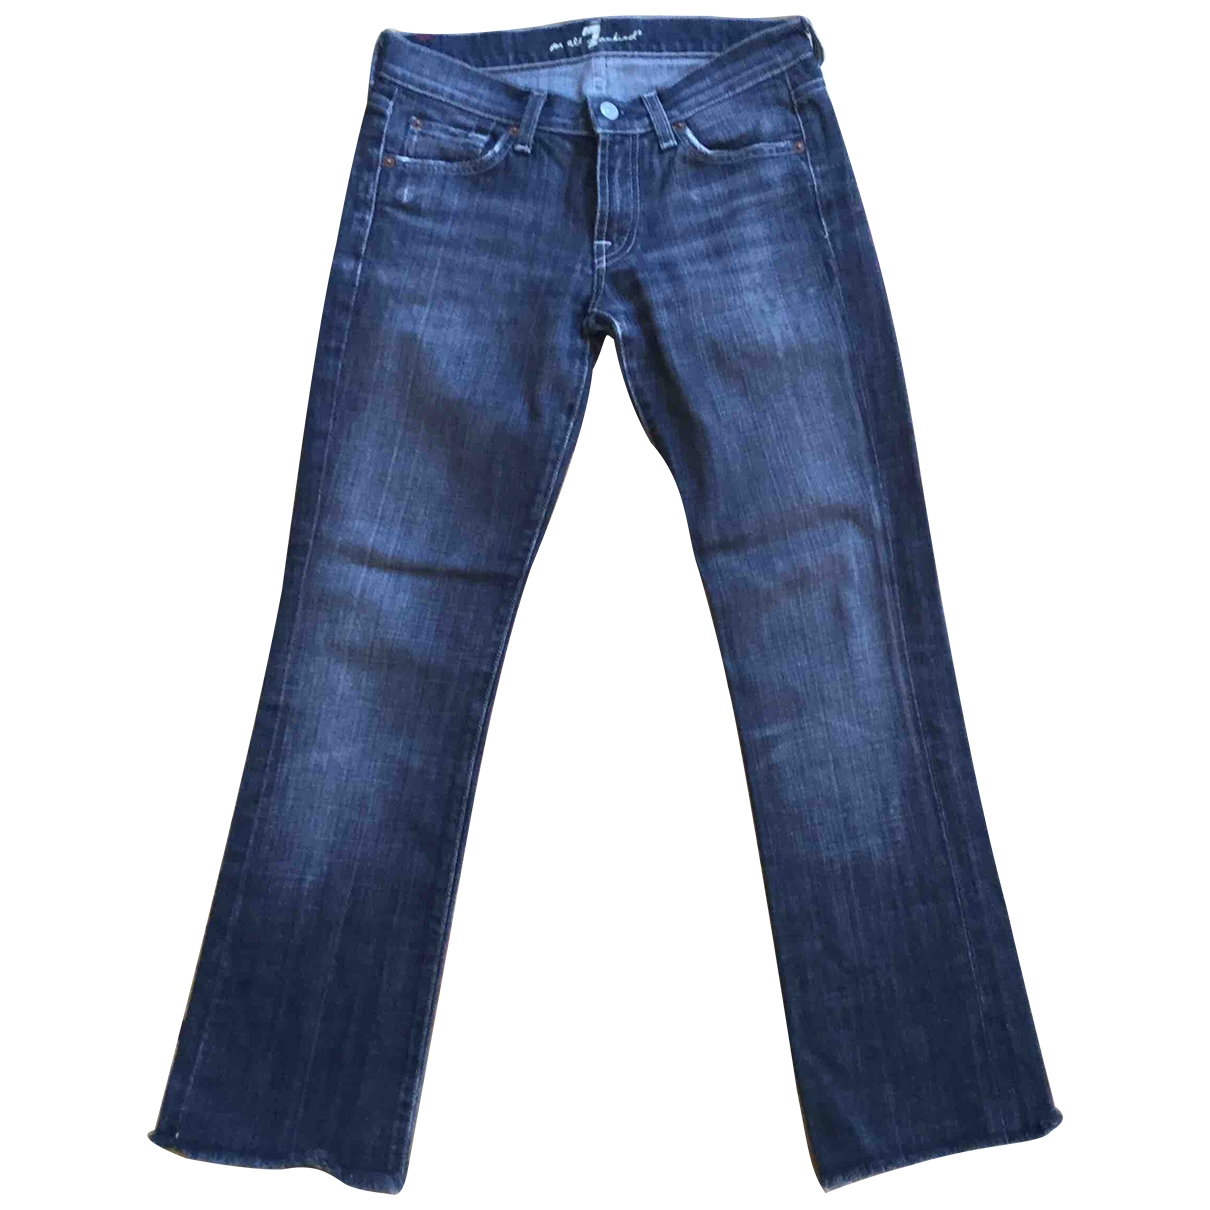 7 For All Mankind \N Grey Denim - Jeans Jeans for Women 27 US